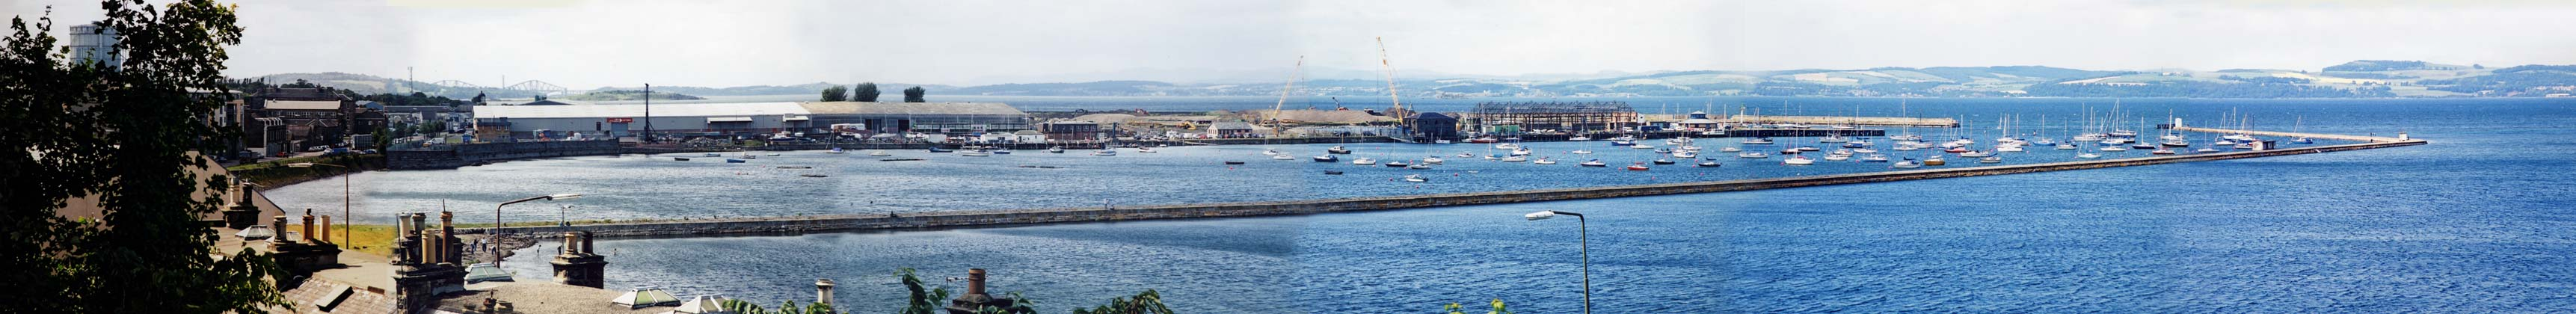 Granton Harbour Panorama  -  made from six photographs taken on 30 June 2004